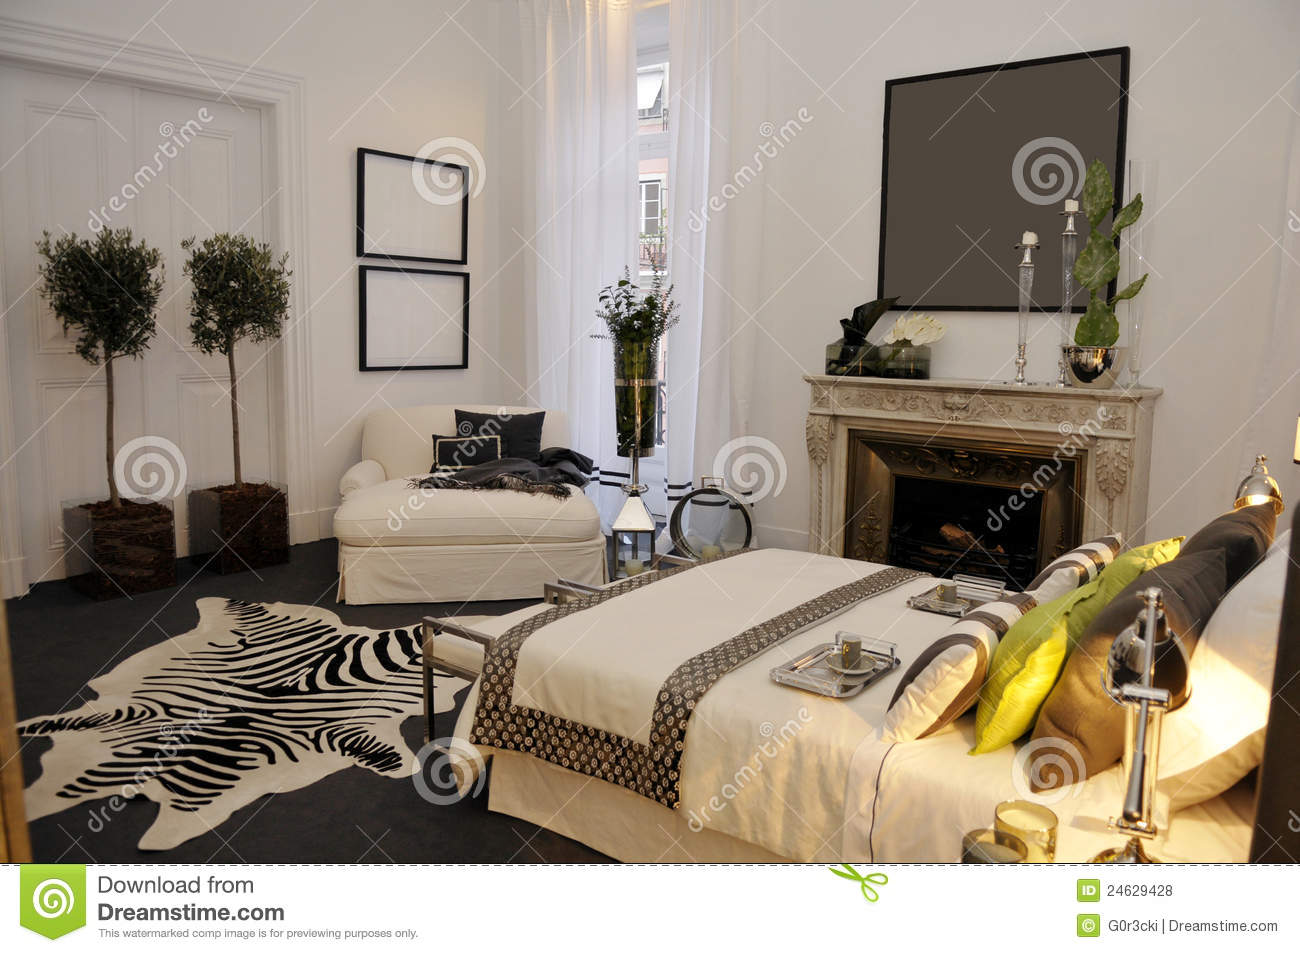 Warm inviting and modern bedroom with white tones and shades of black dark grey and green also with pillows and quilt